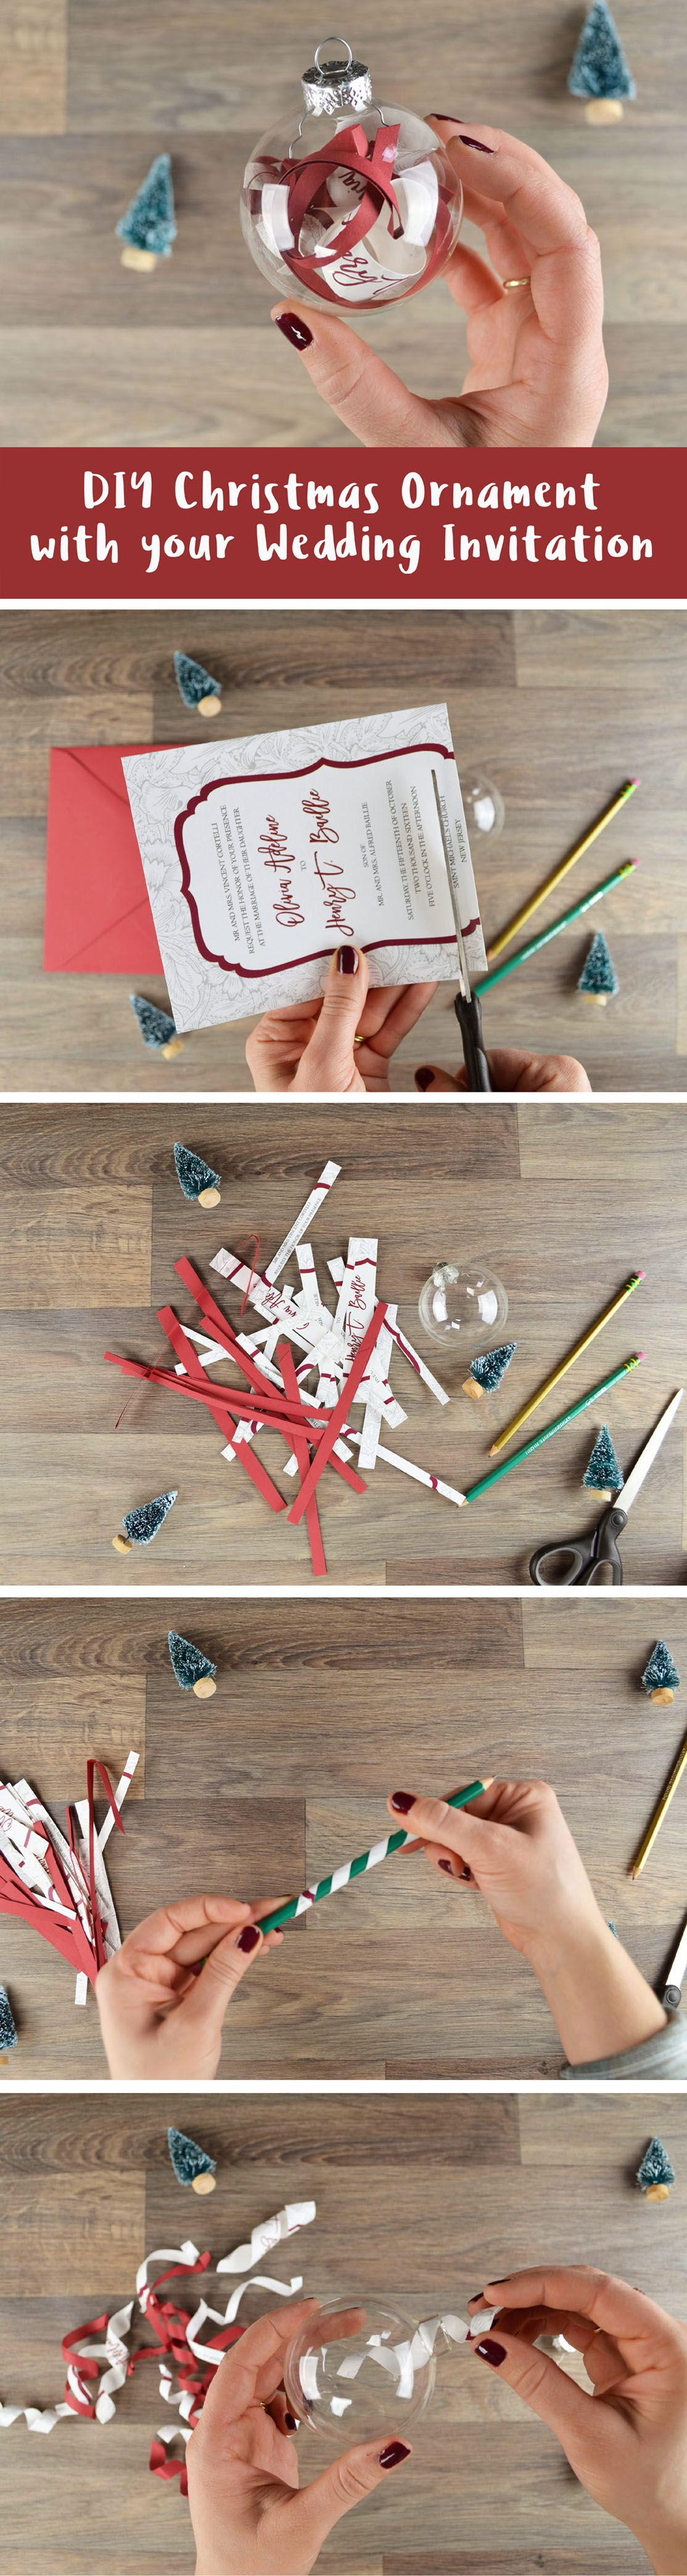 Reuse your wedding invitations with this fun DIY Christmas ornament project! A super easy and affordable way to create a special first married Christmas ornament and keepsake | http://blog.cardsandpockets.com/2016/12/08/how-to-make-a-diy-christmas-ornament-with-your-wedding-invitation/